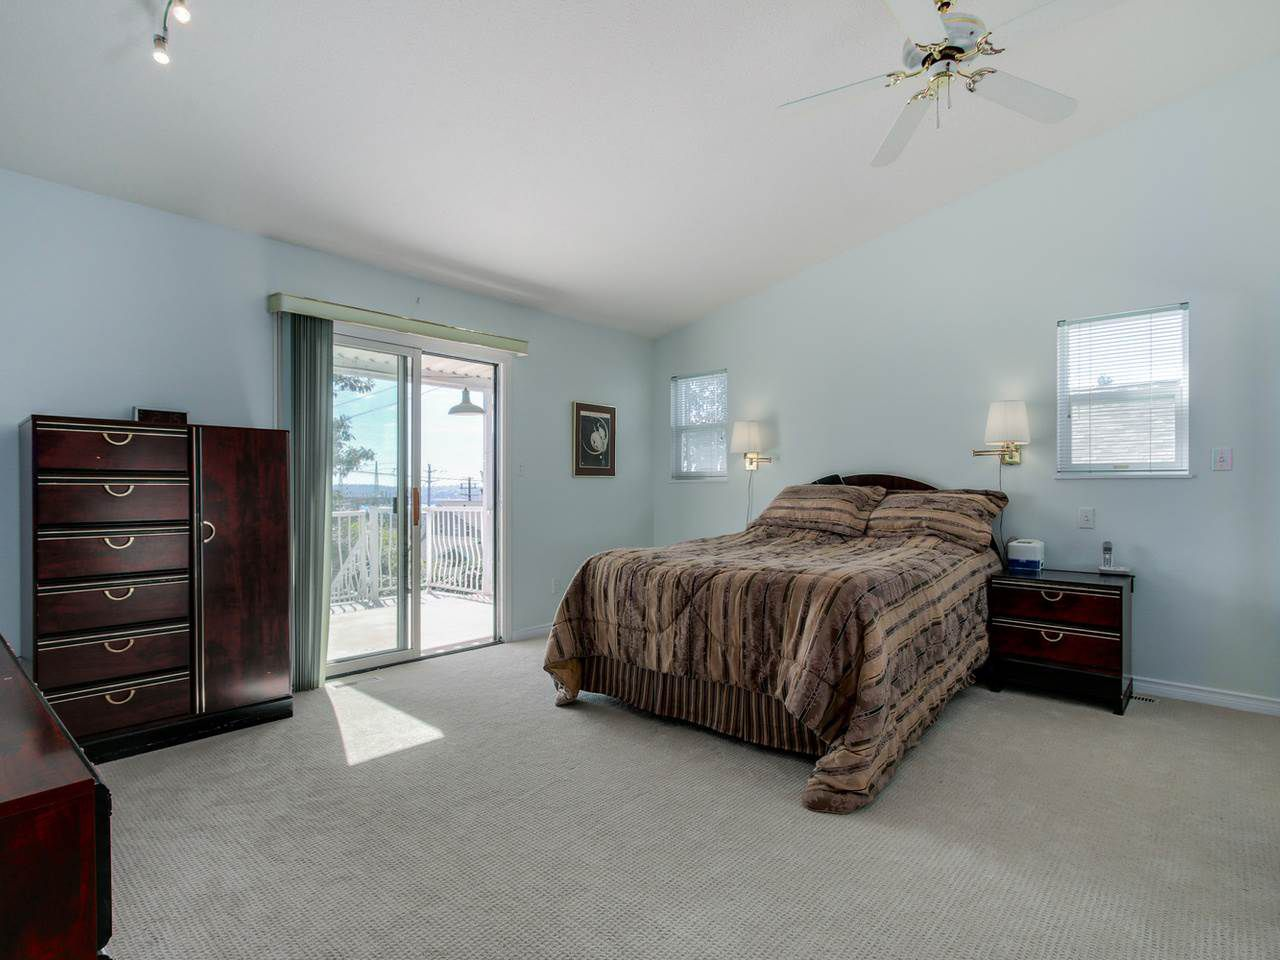 Photo 15: Photos: 449 E 5TH Street in North Vancouver: Lower Lonsdale House for sale : MLS®# R2056647